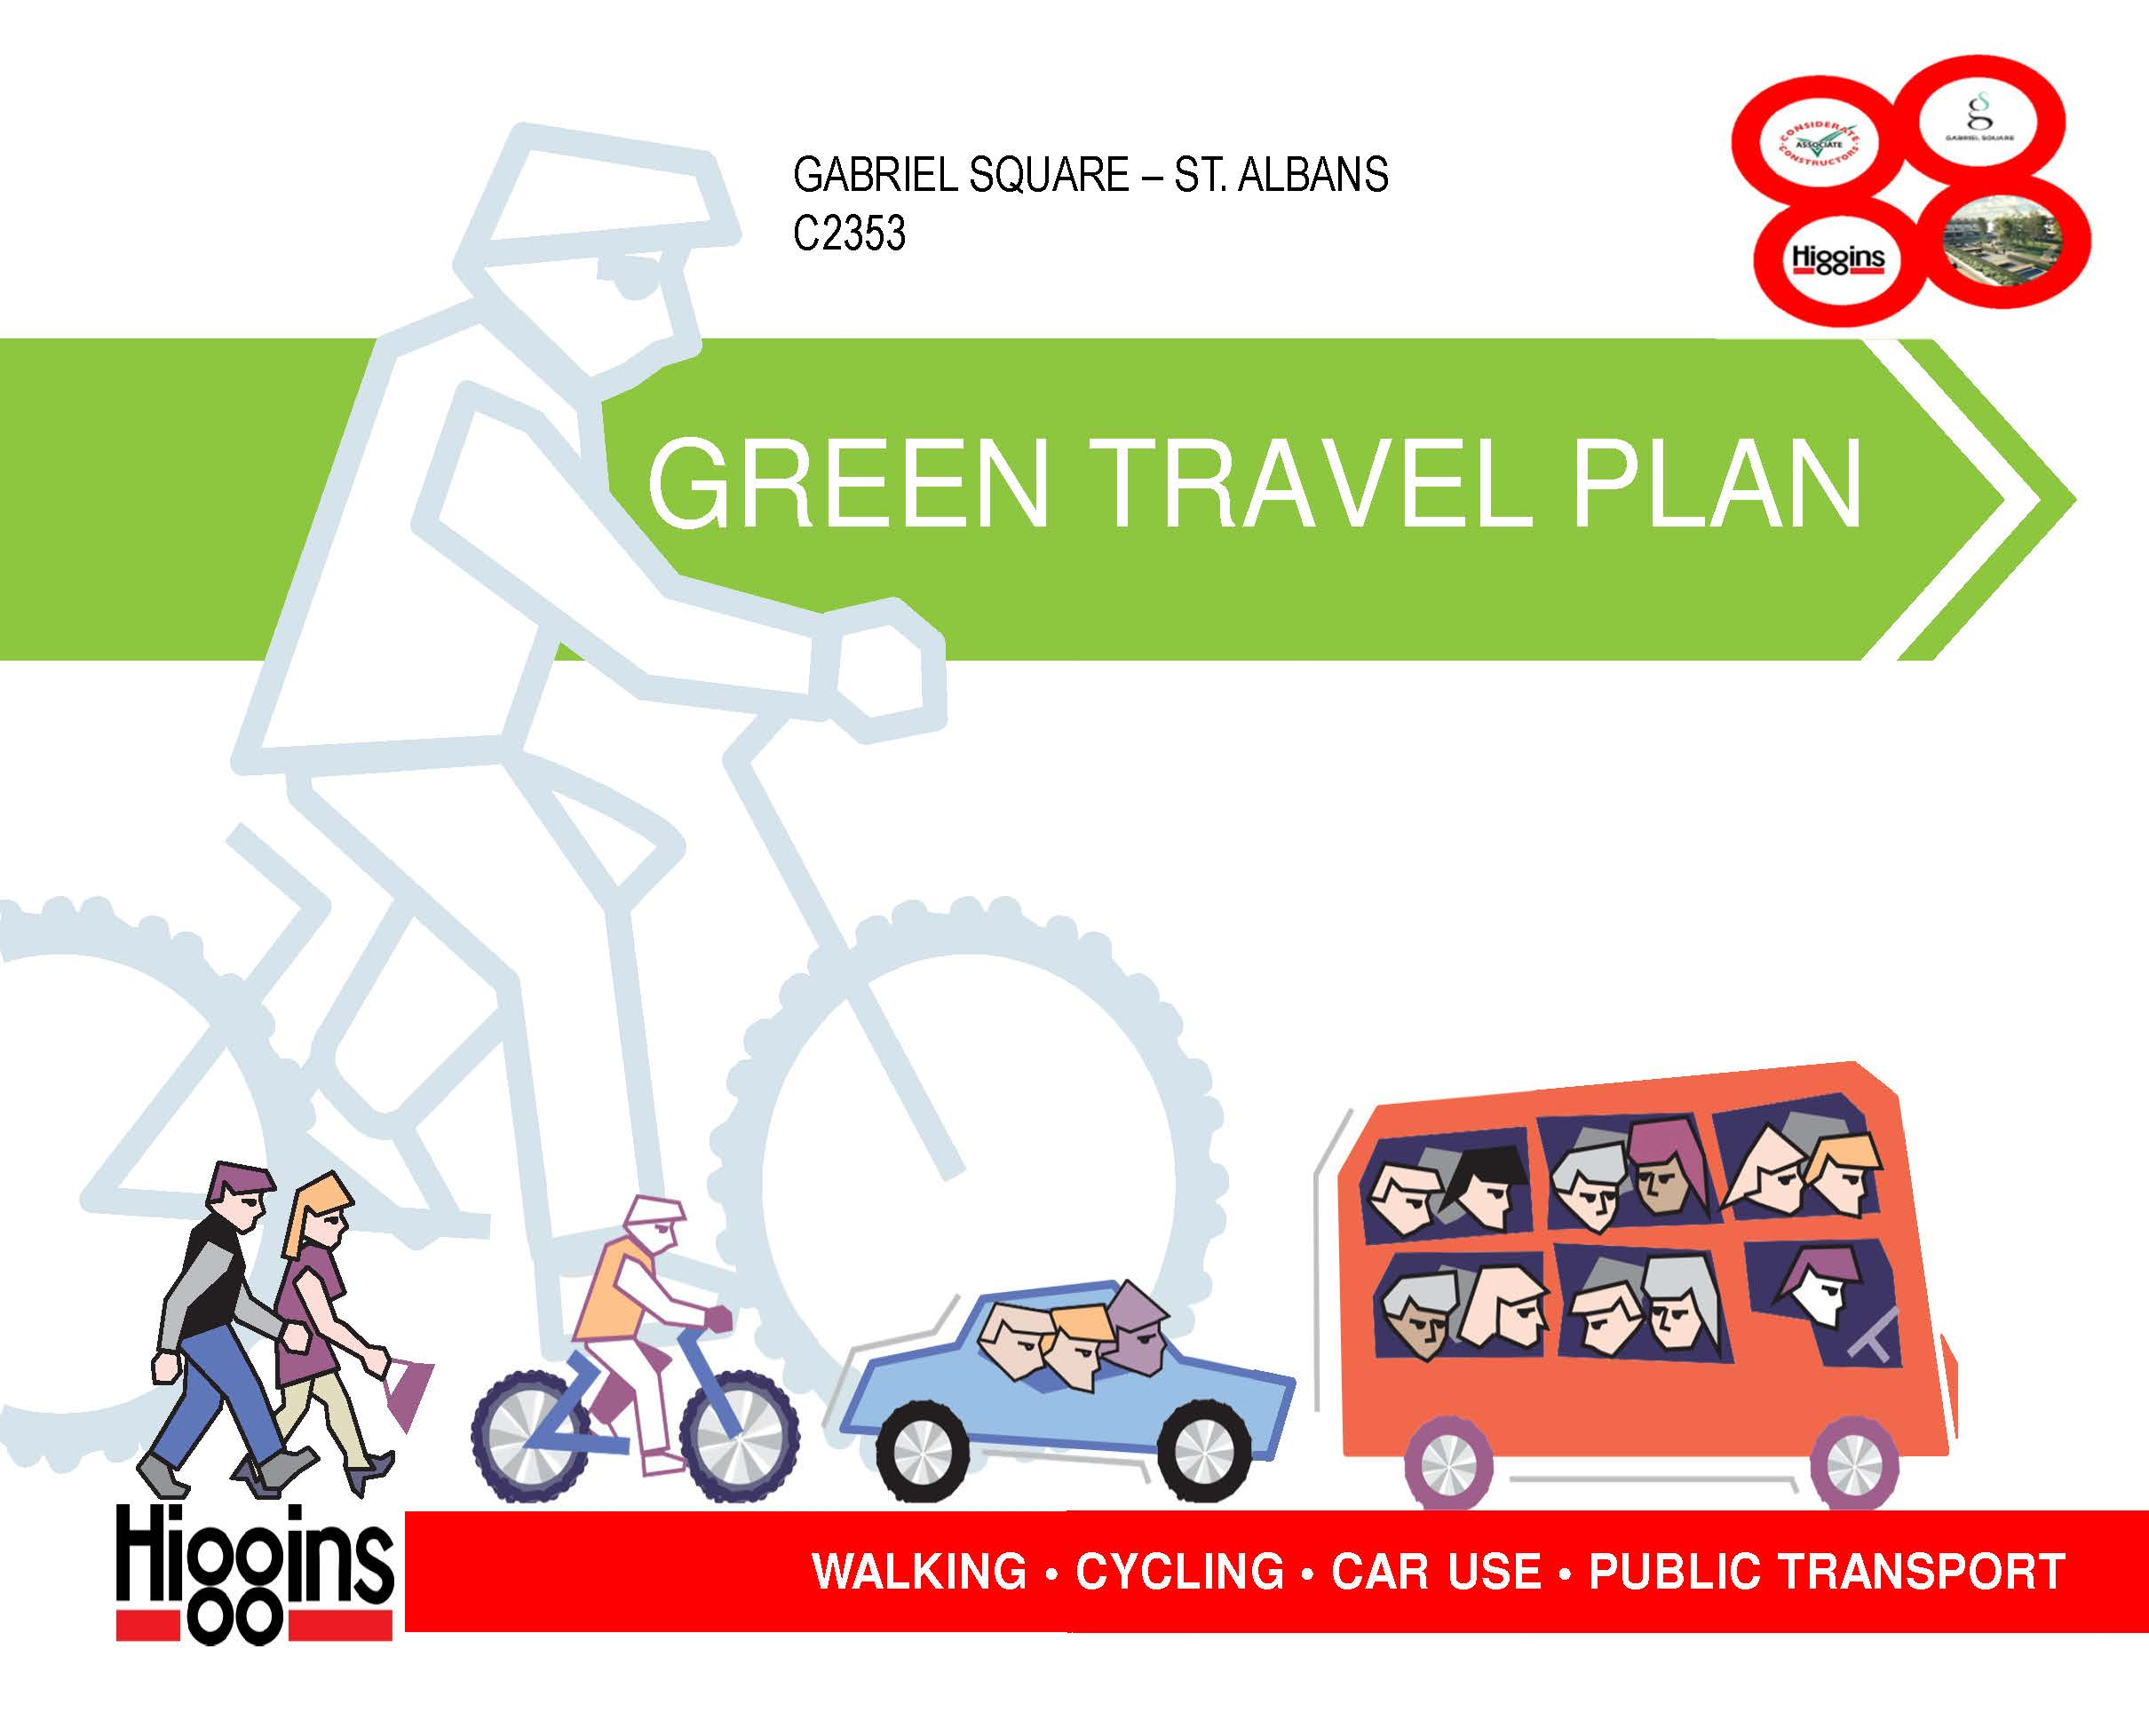 187 green travel plan for gabriel square best practice hub